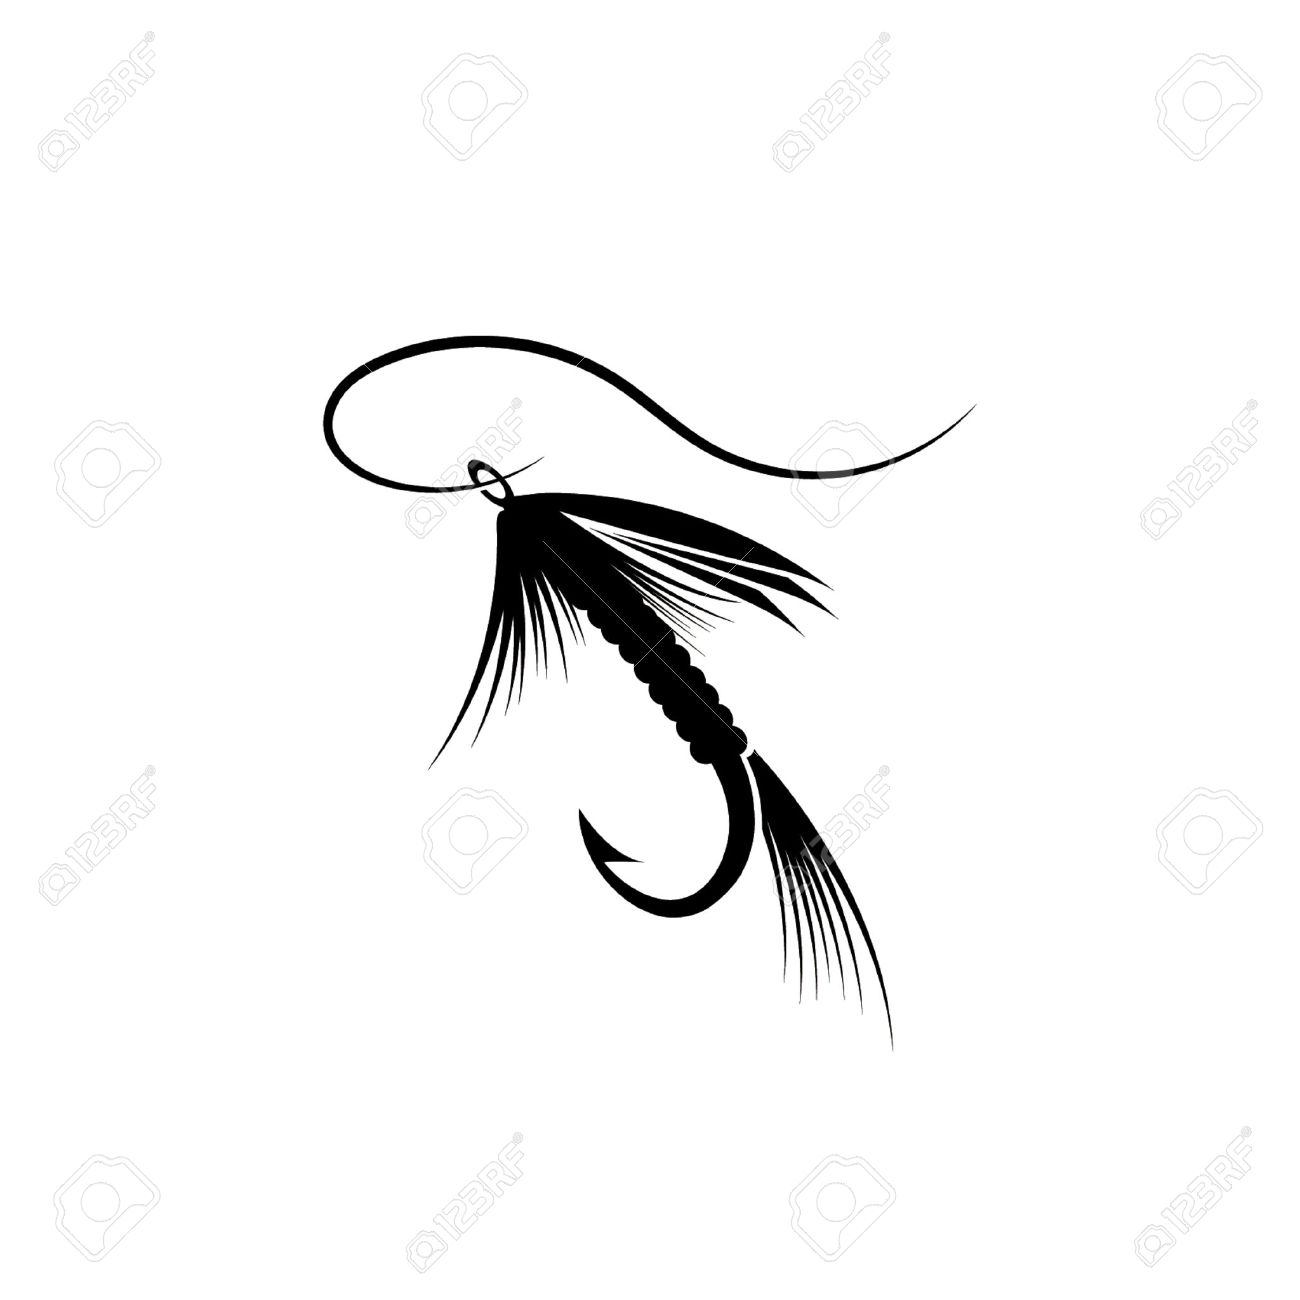 Fly fishing reel clipart png royalty free Fly Fishing Clipart | Free download best Fly Fishing Clipart on ... png royalty free